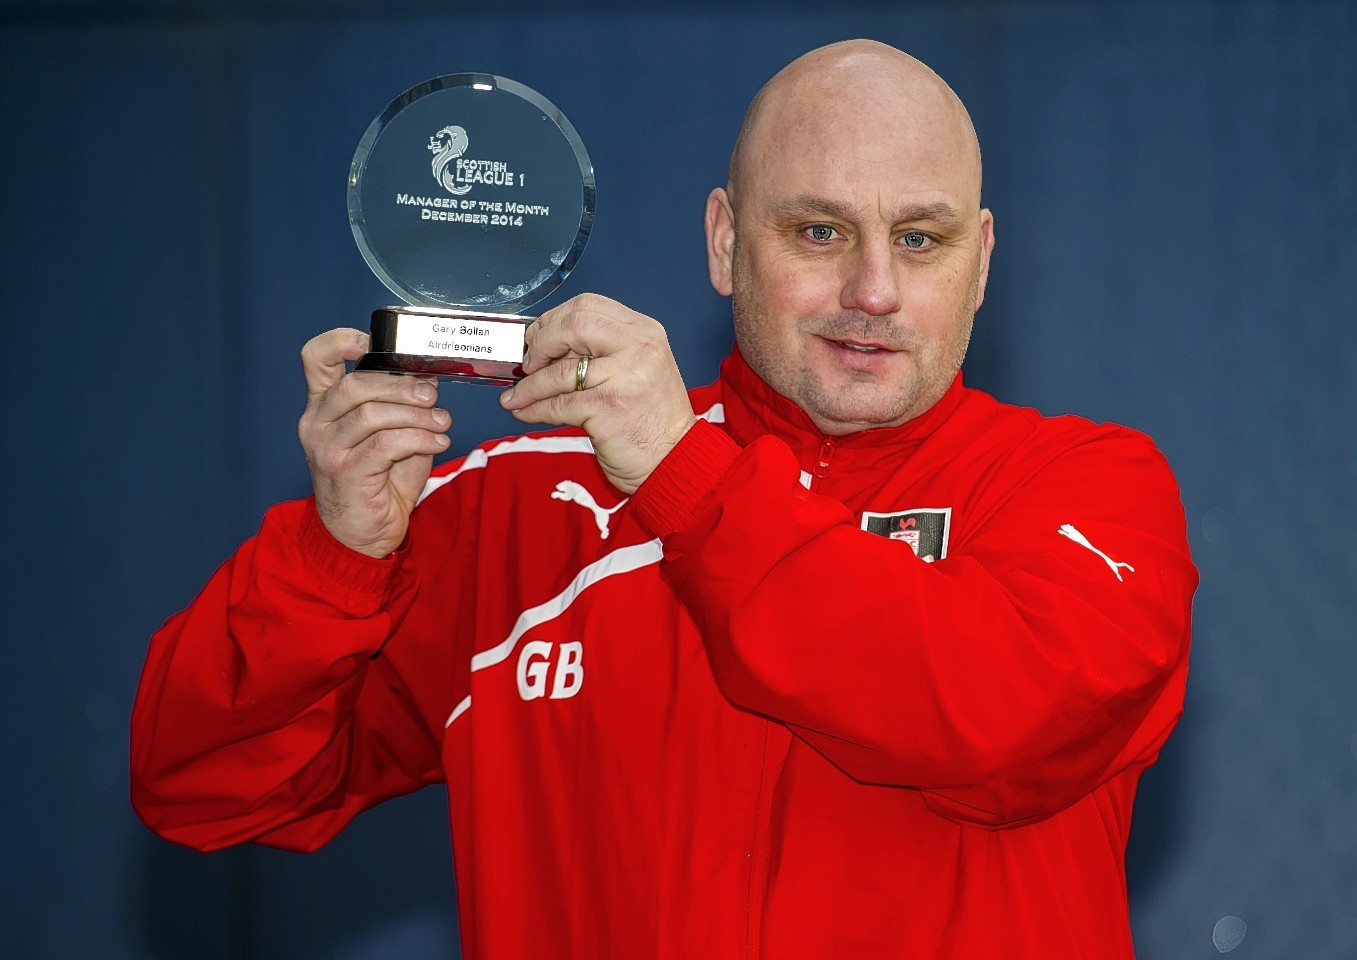 Gary Bollan collects his manager of the month award